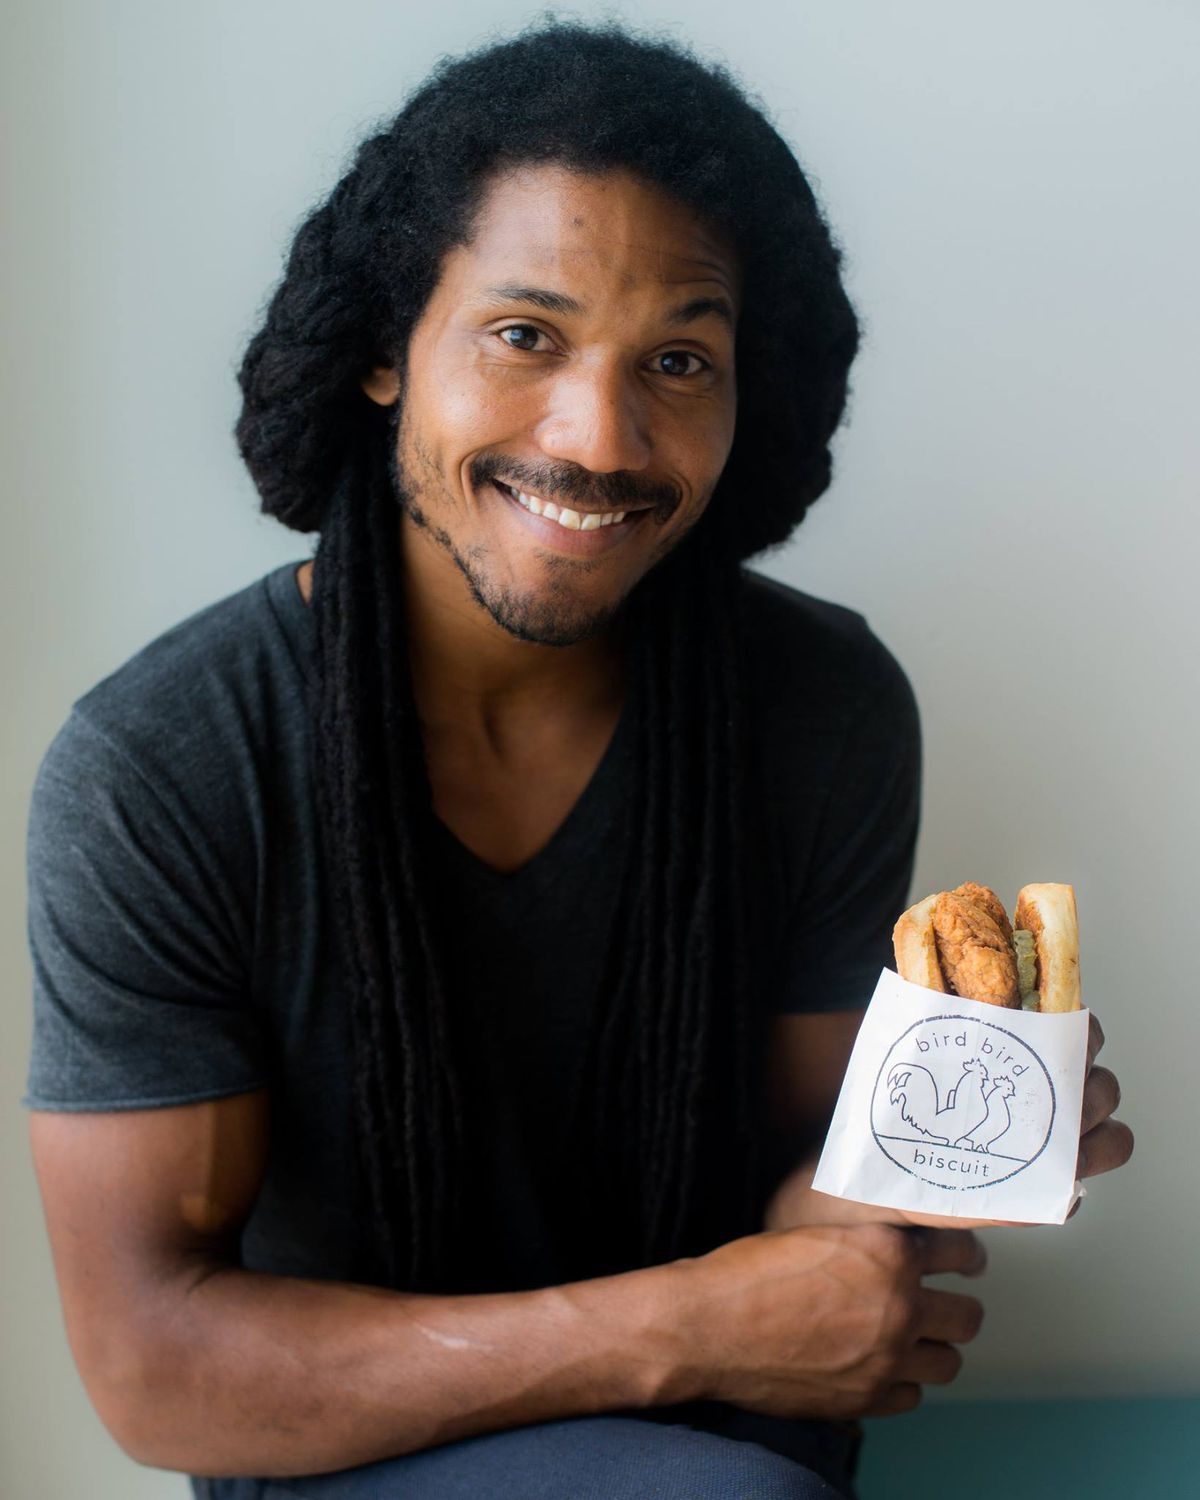 Bird Bird Biscuit co-owner and chef Brian Batch holds up a biscuit sandwich